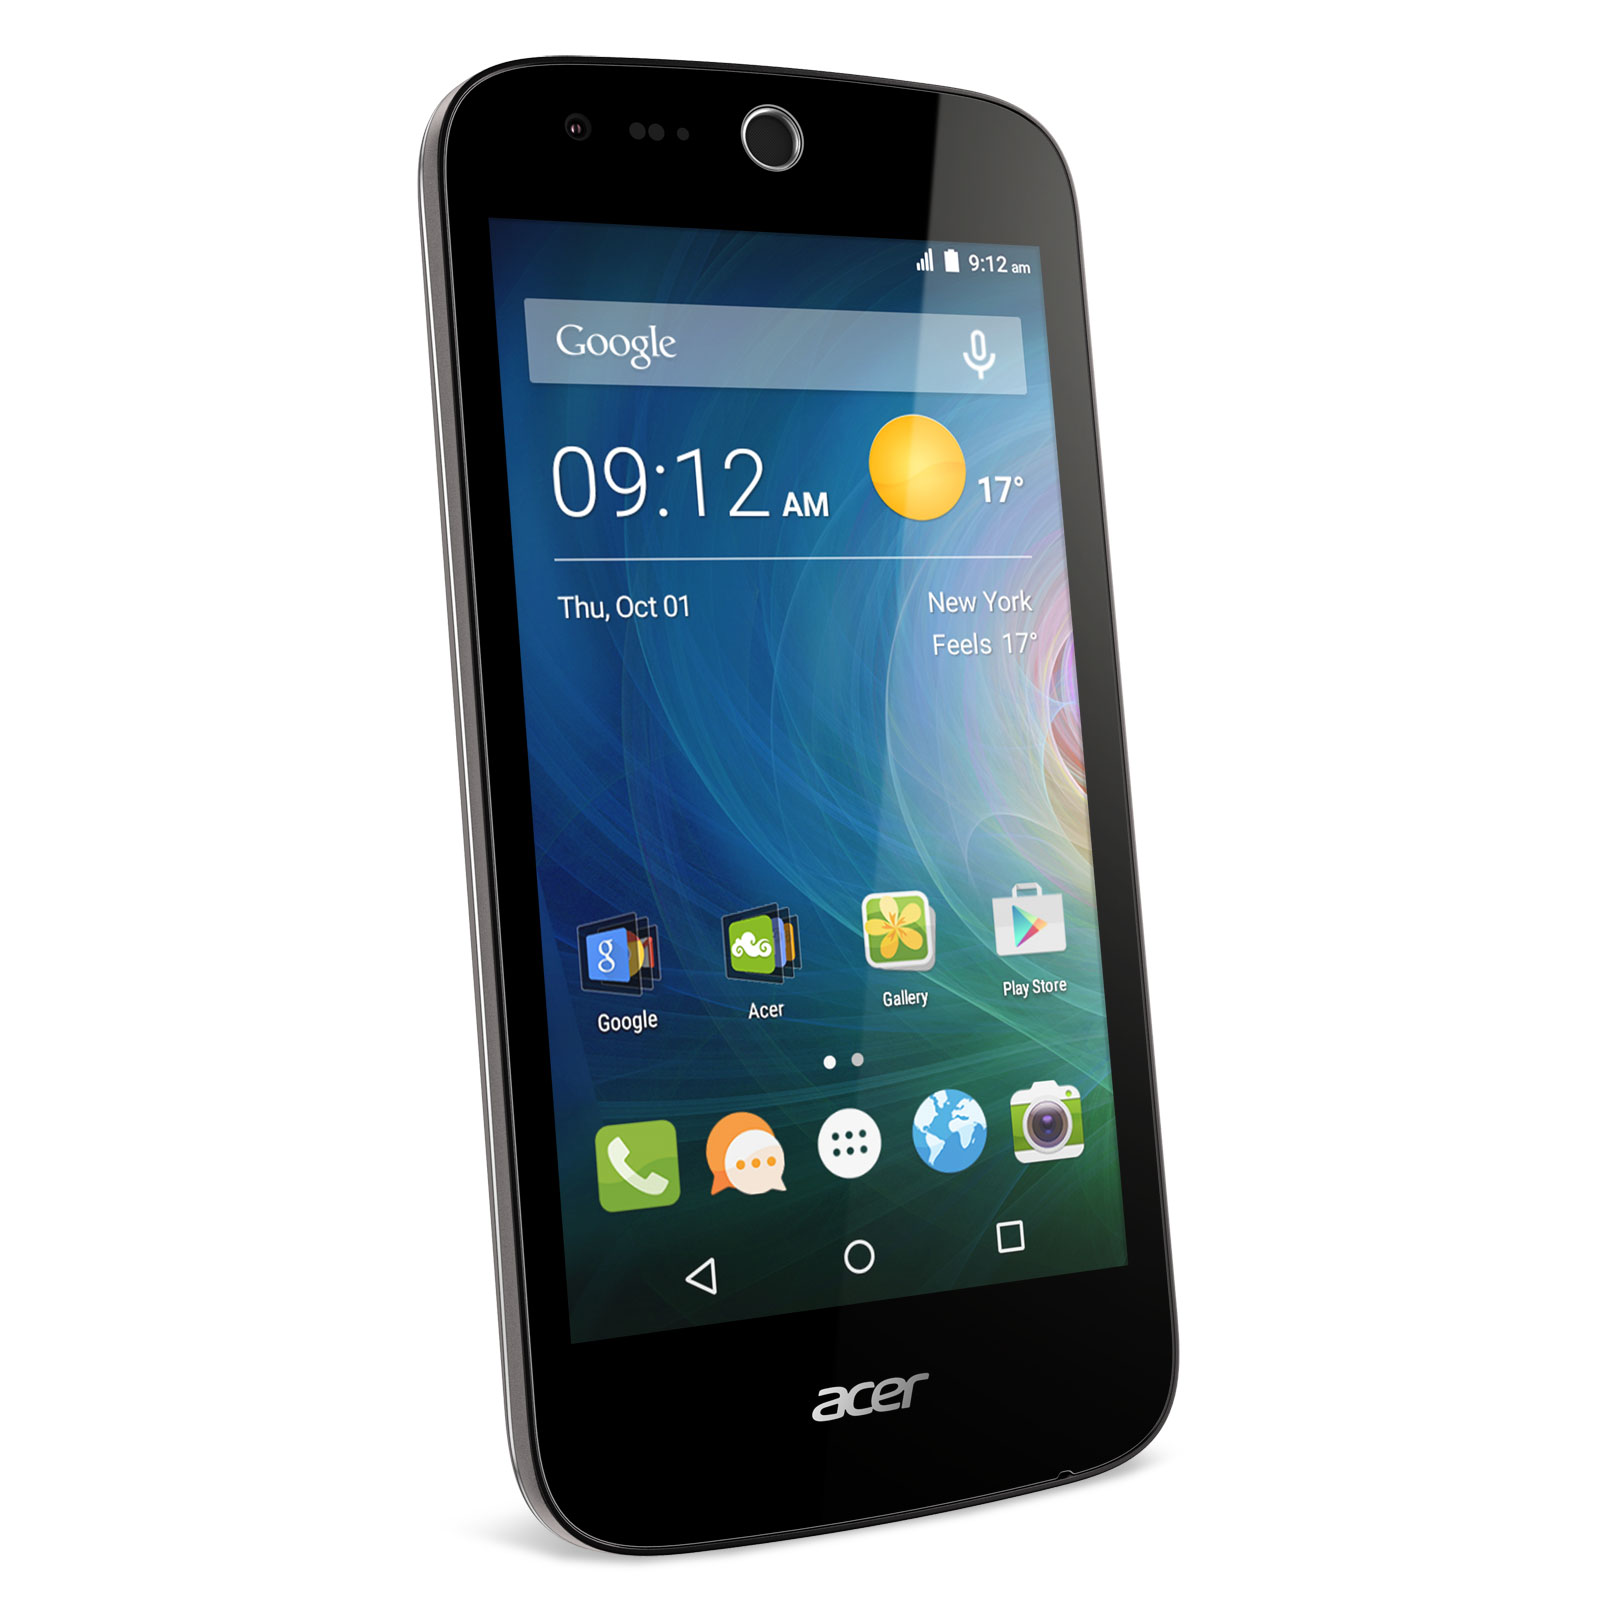 acer liquid z330 noir mobile smartphone acer sur. Black Bedroom Furniture Sets. Home Design Ideas